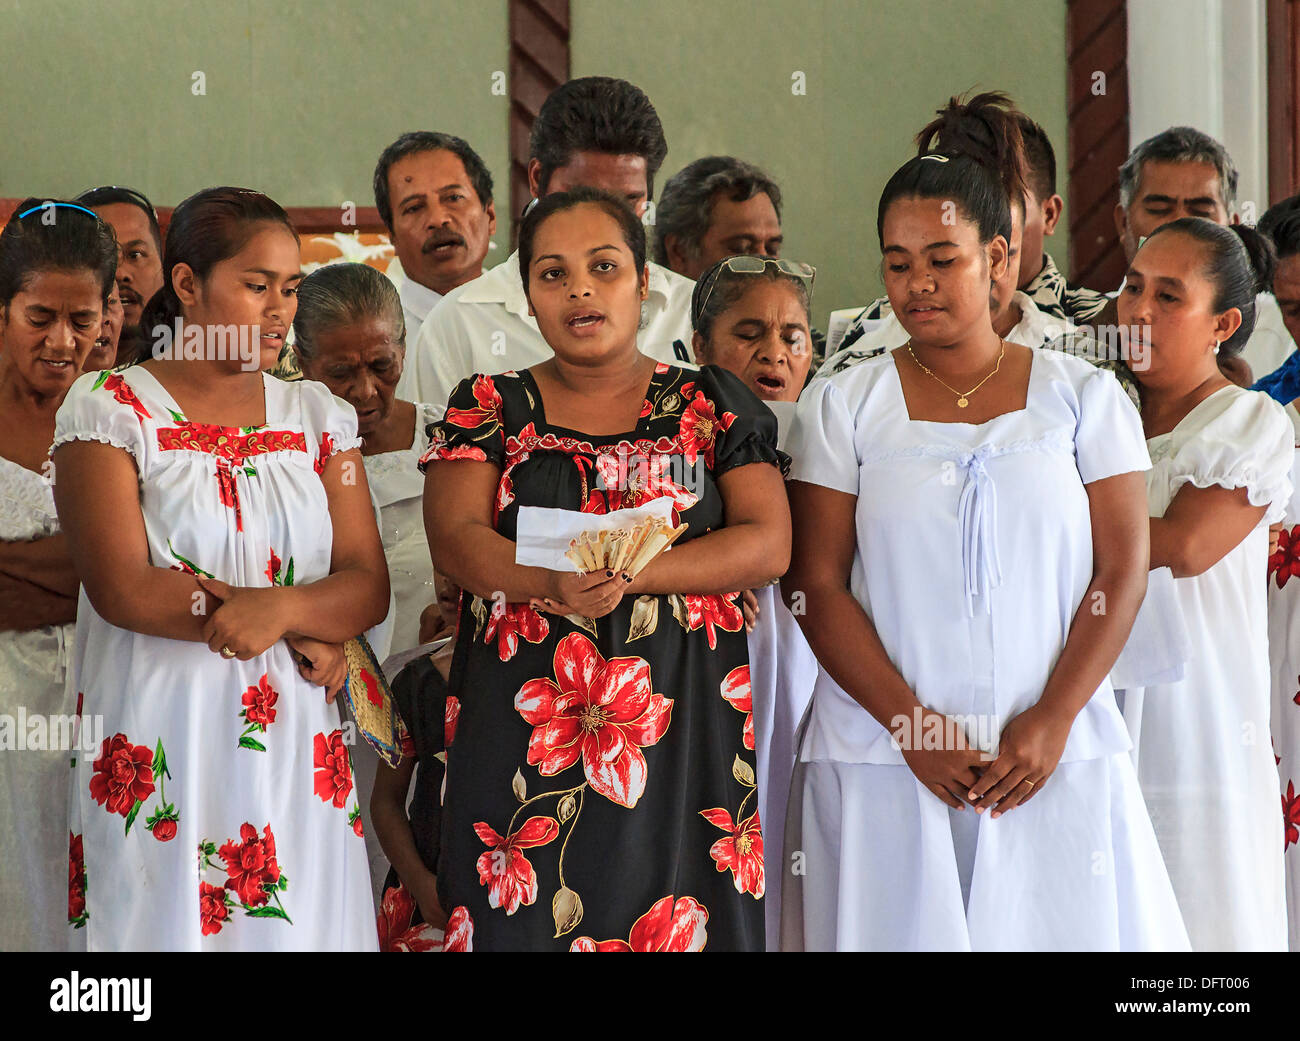 Micronesian women dressed in white lace sing four part choral harmony during church service in Tafunsak, Kosrae, Micronesia - Stock Image